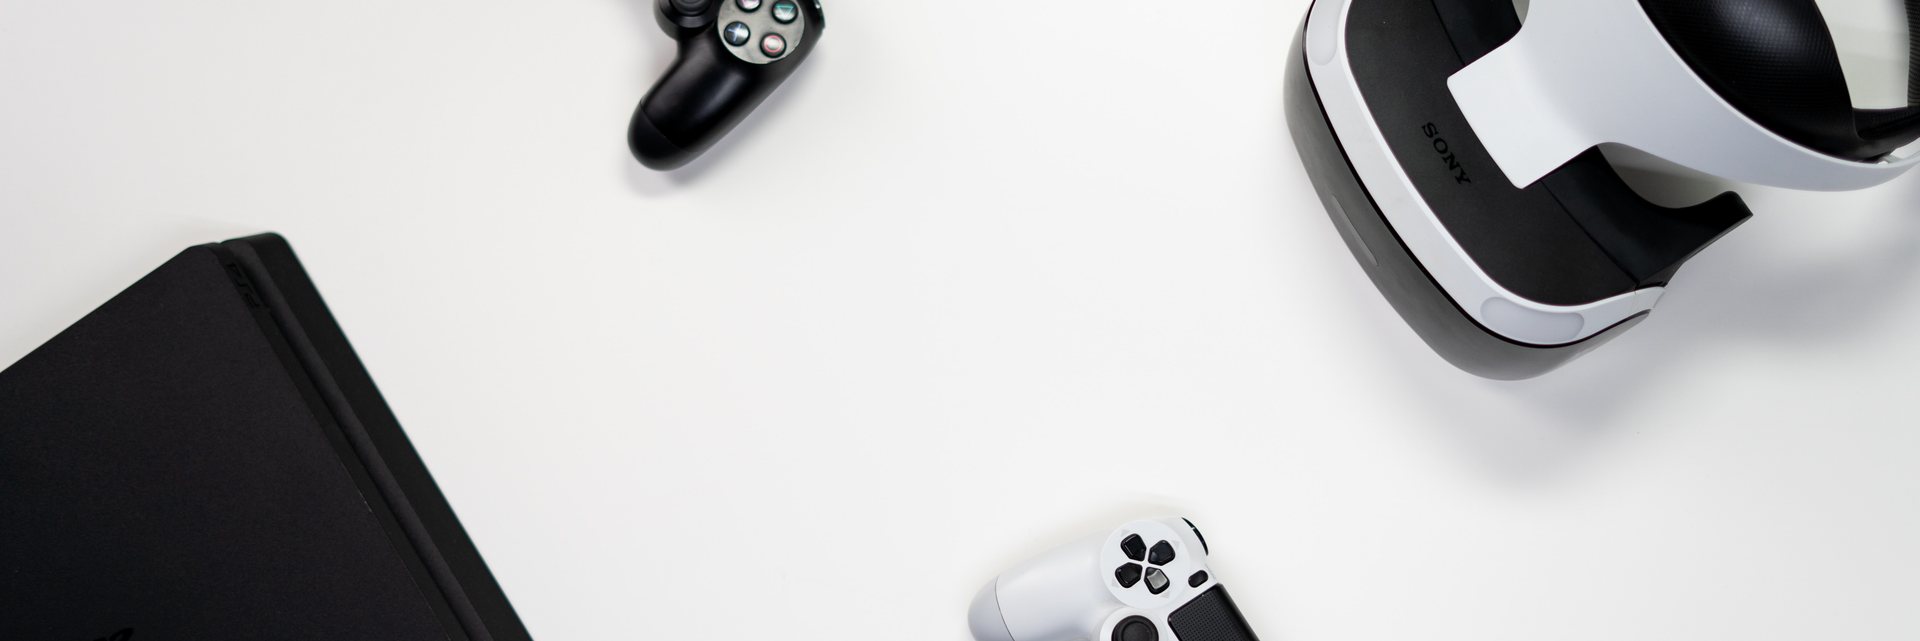 Top 5 Best Selling Video Game Consoles Of All Time